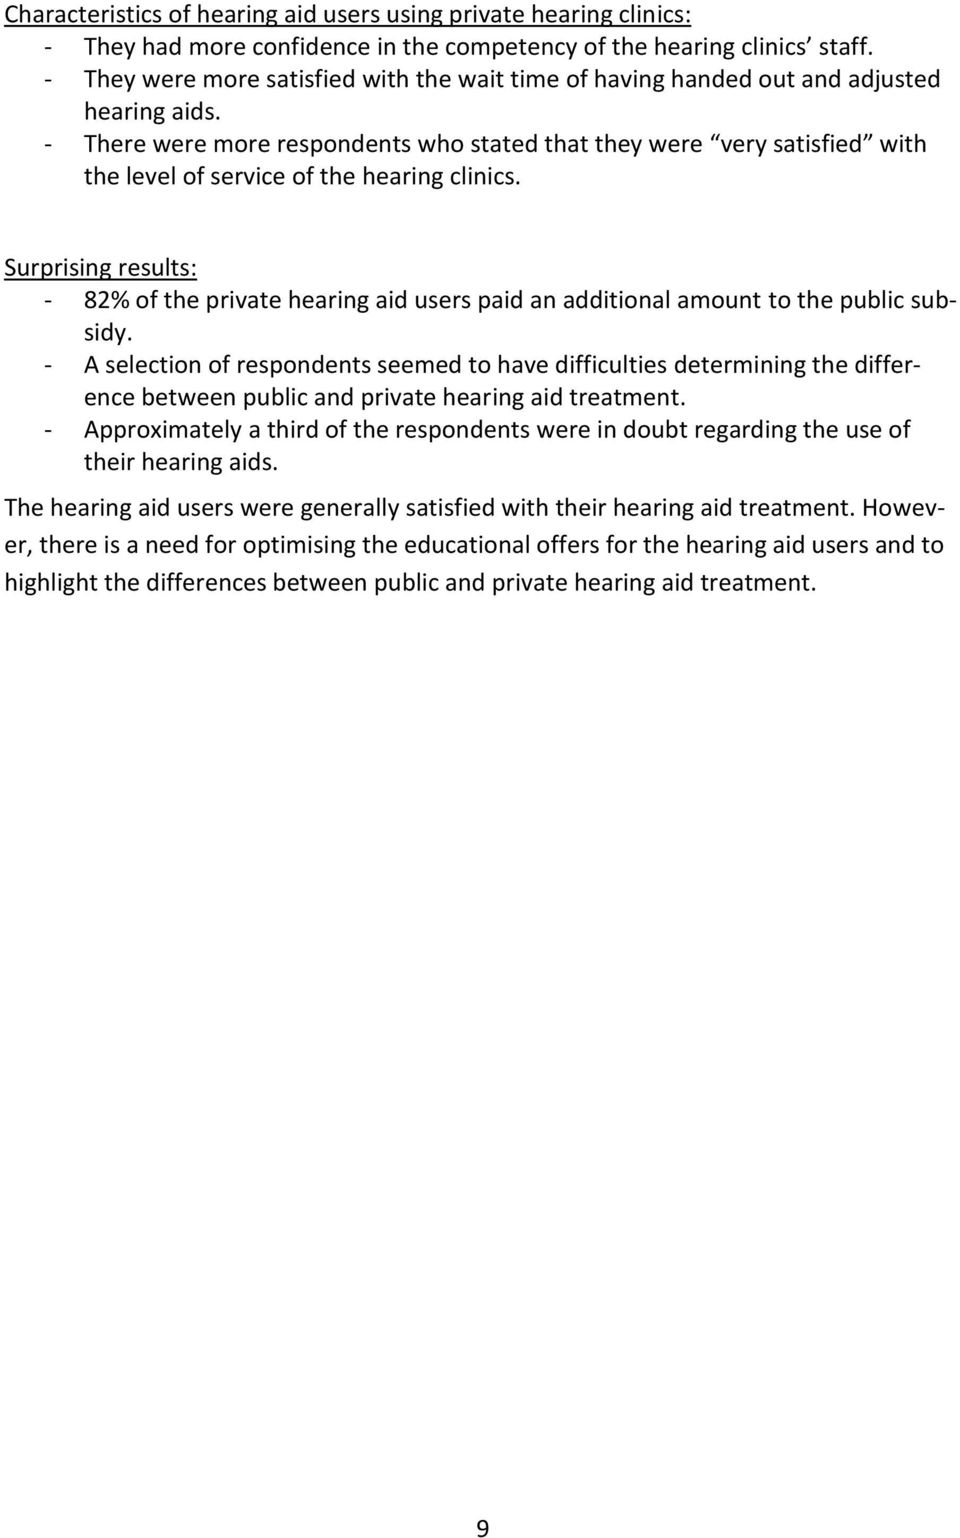 - There were more respondents who stated that they were very satisfied with the level of service of the hearing clinics.